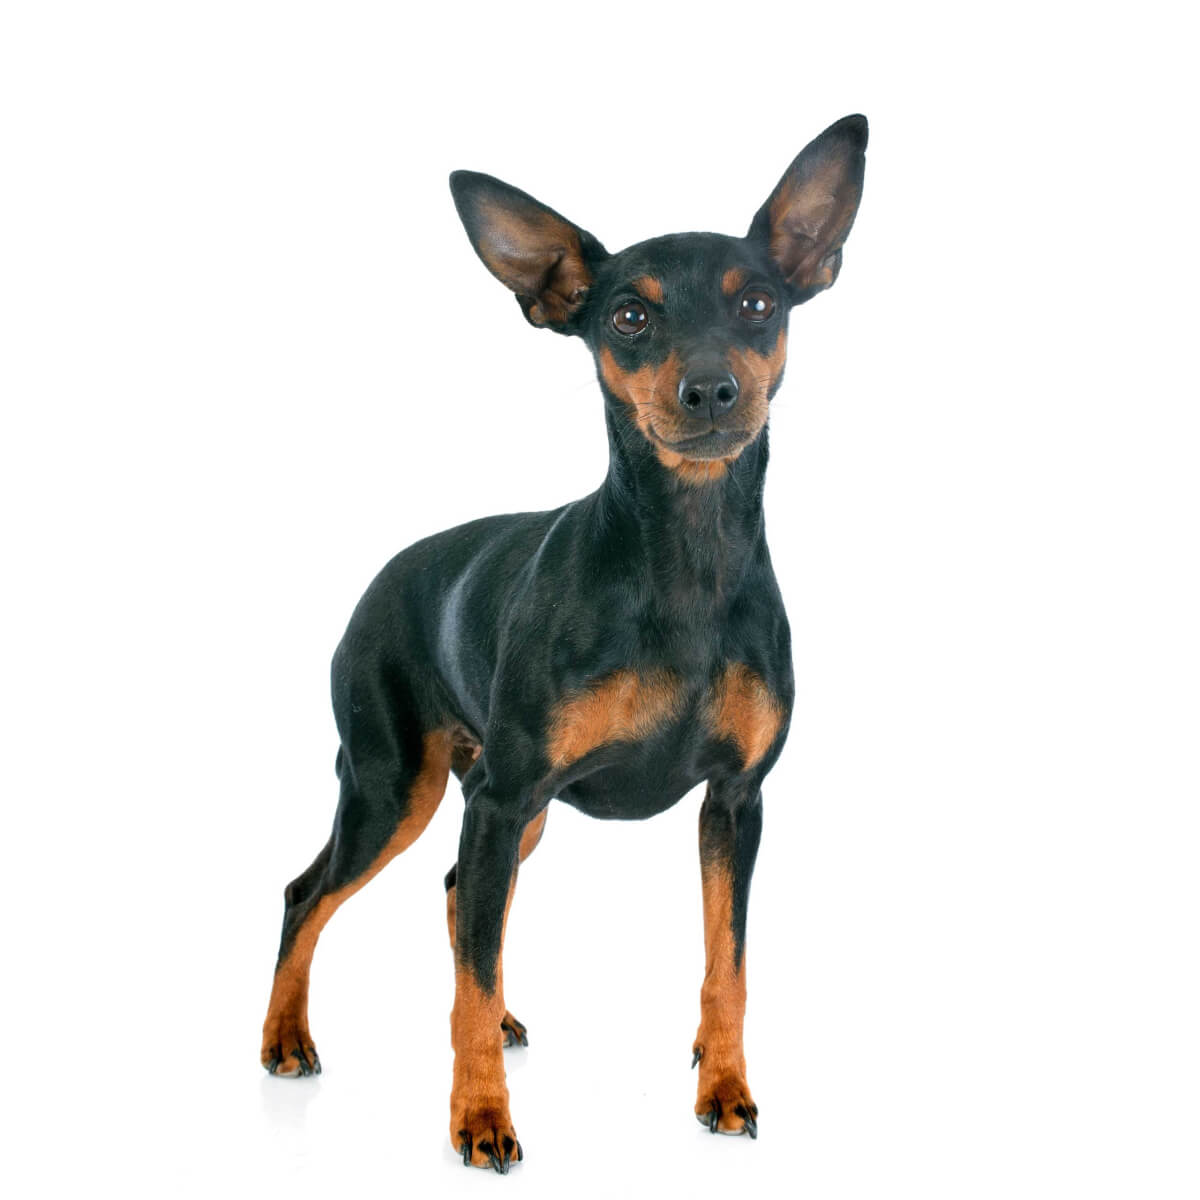 Miniature Pinscher Dog Breed Information Pictures More